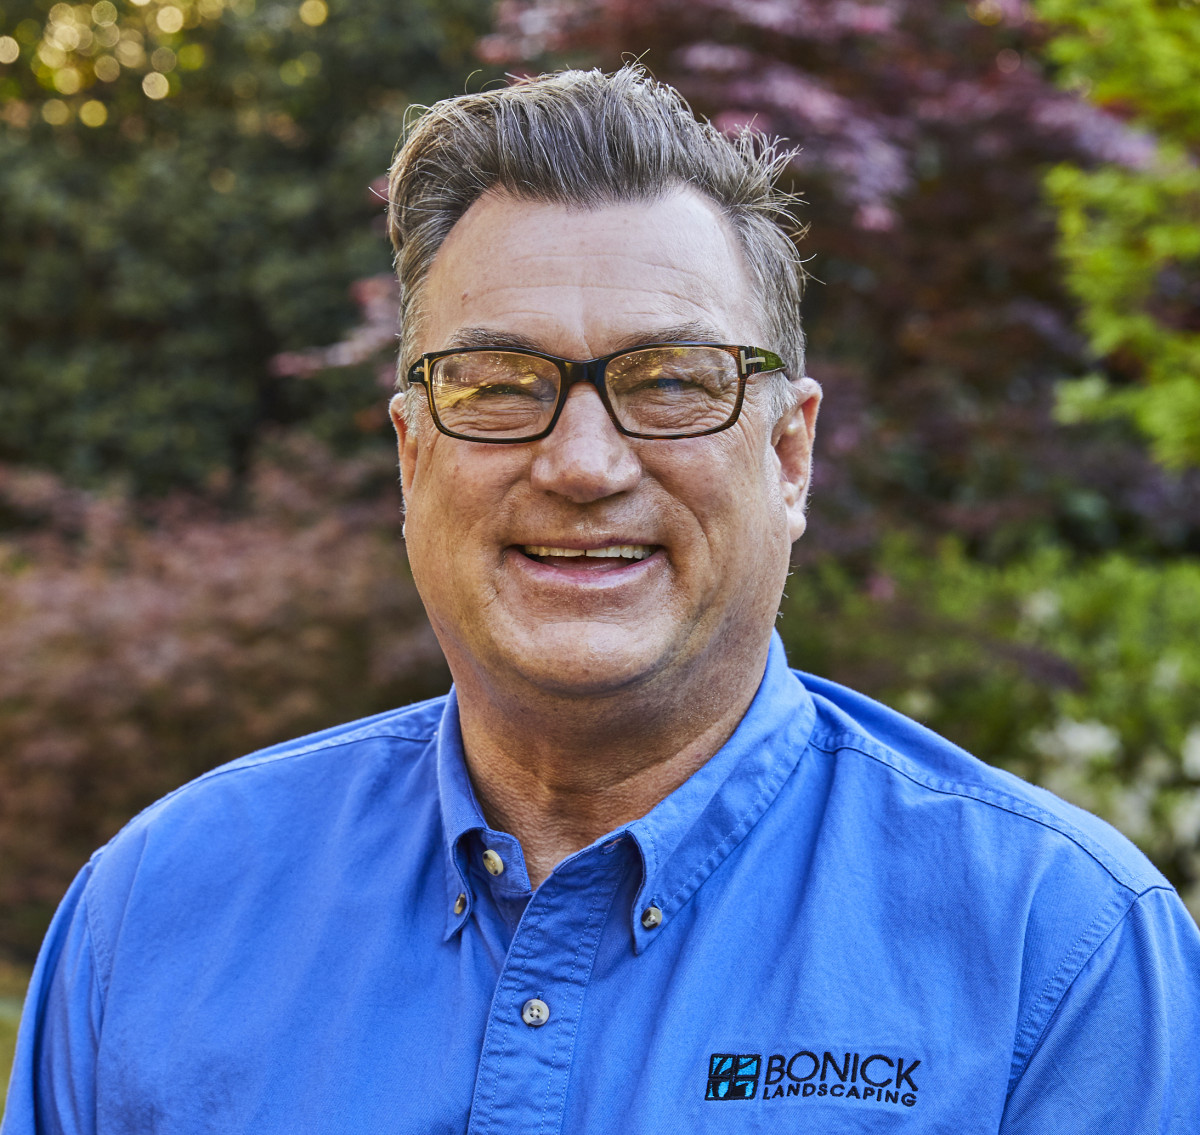 Meet Renaissance Man & Garden Manager, Joe Horton